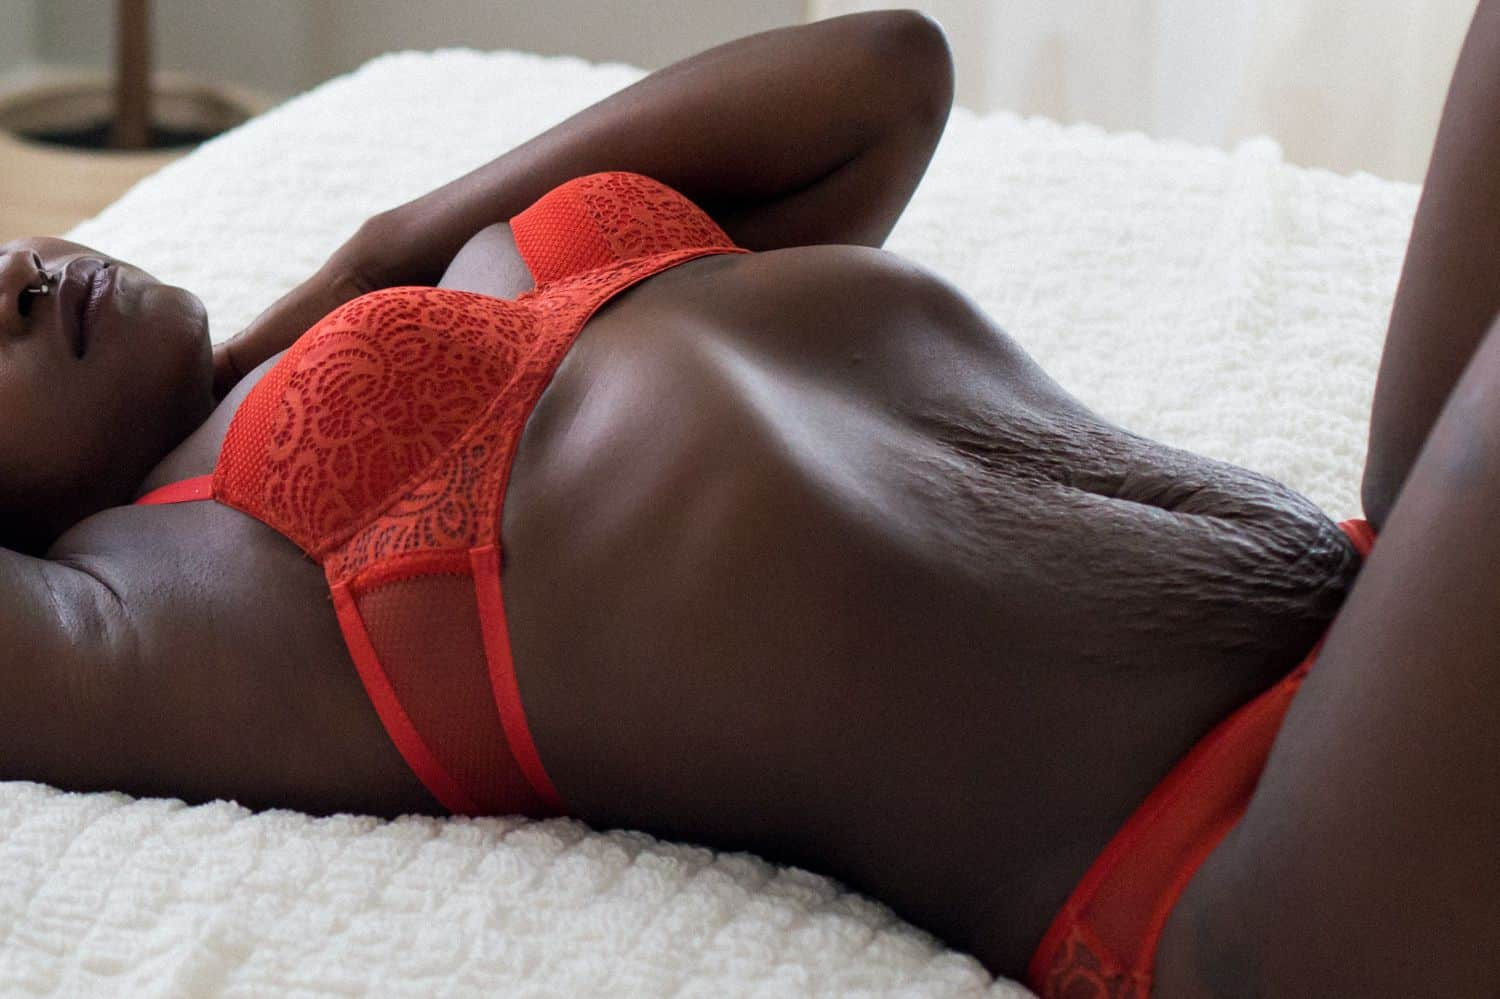 A dark-skinned person in deep orange lingerie reclines back on a white bed. The Empowerment Photographer is highlighting this individuals beautiful curves, lines, and angles.